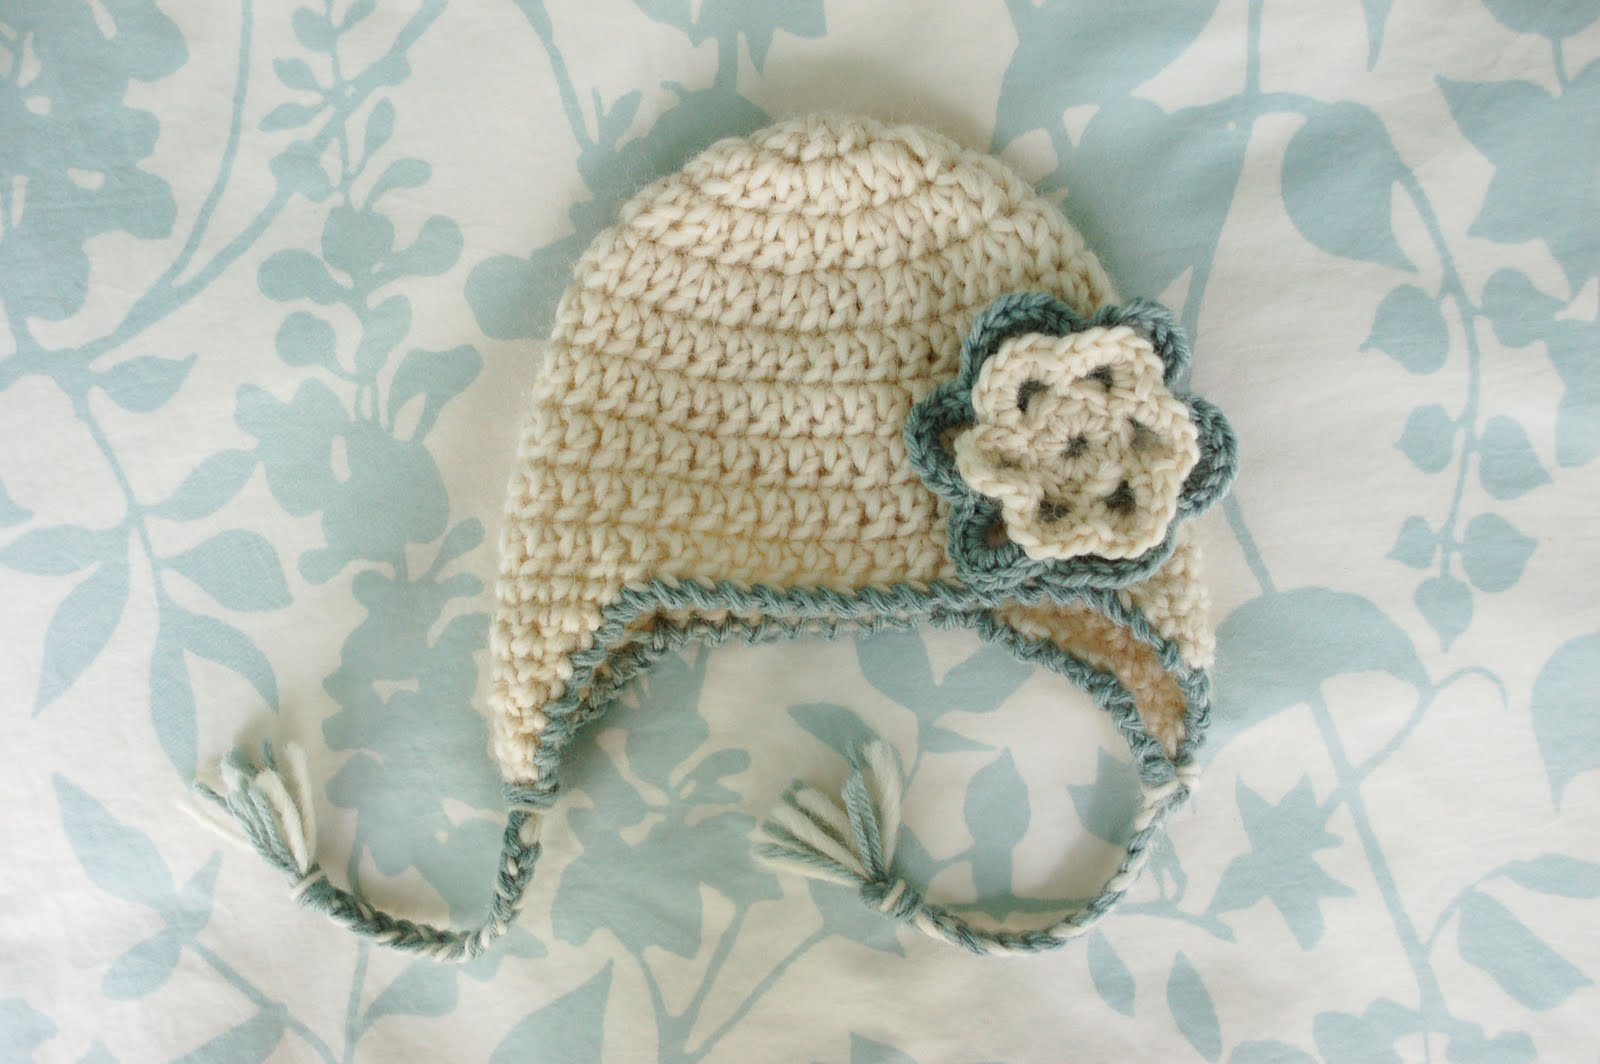 Crochet Earflap Hat : Crochet For Free: Newborn Earflap Hat